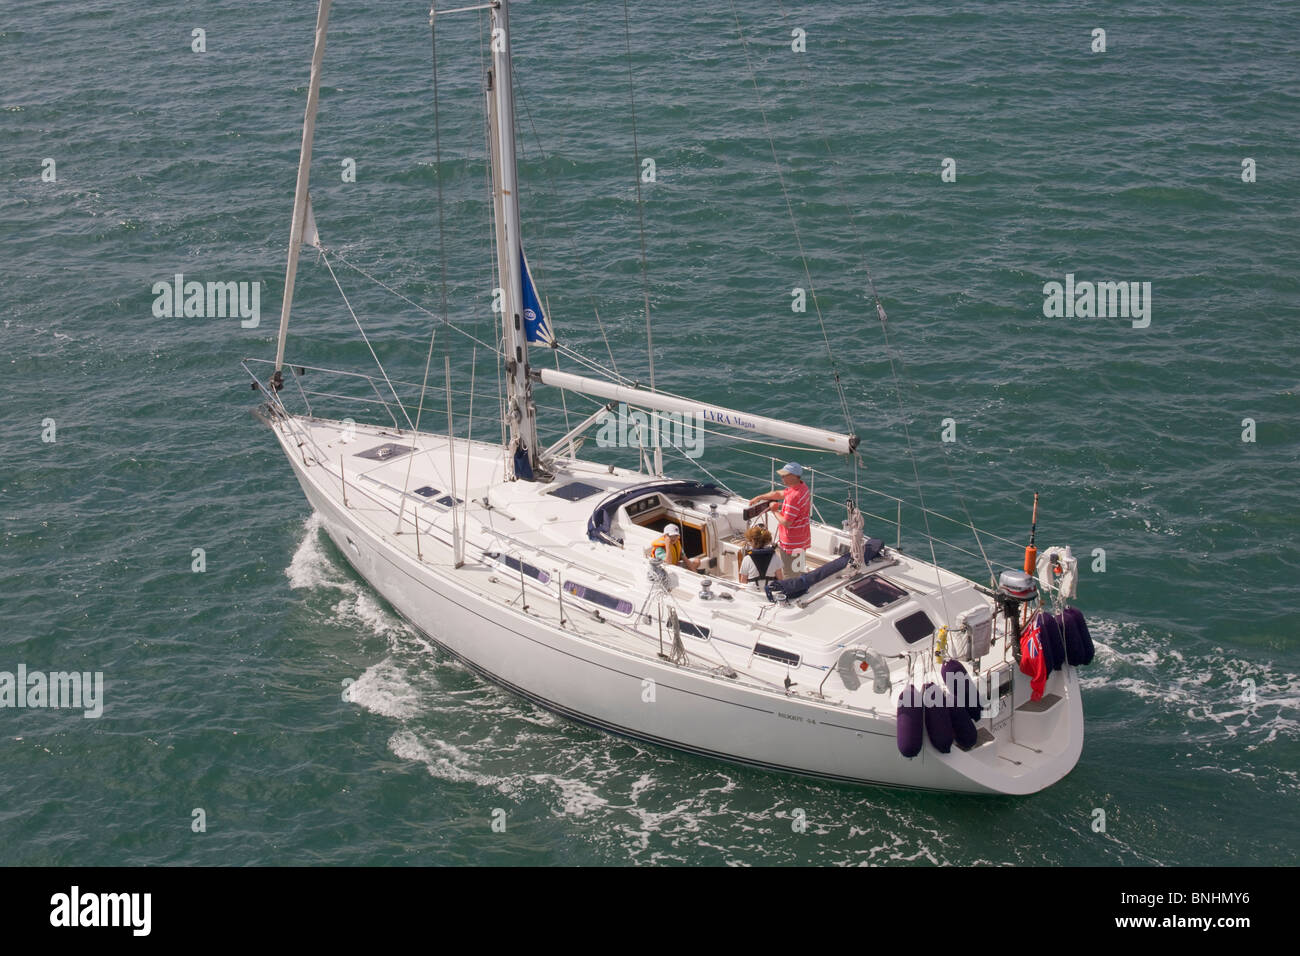 Moody 44 Yacht motoring in the Solent - Stock Image